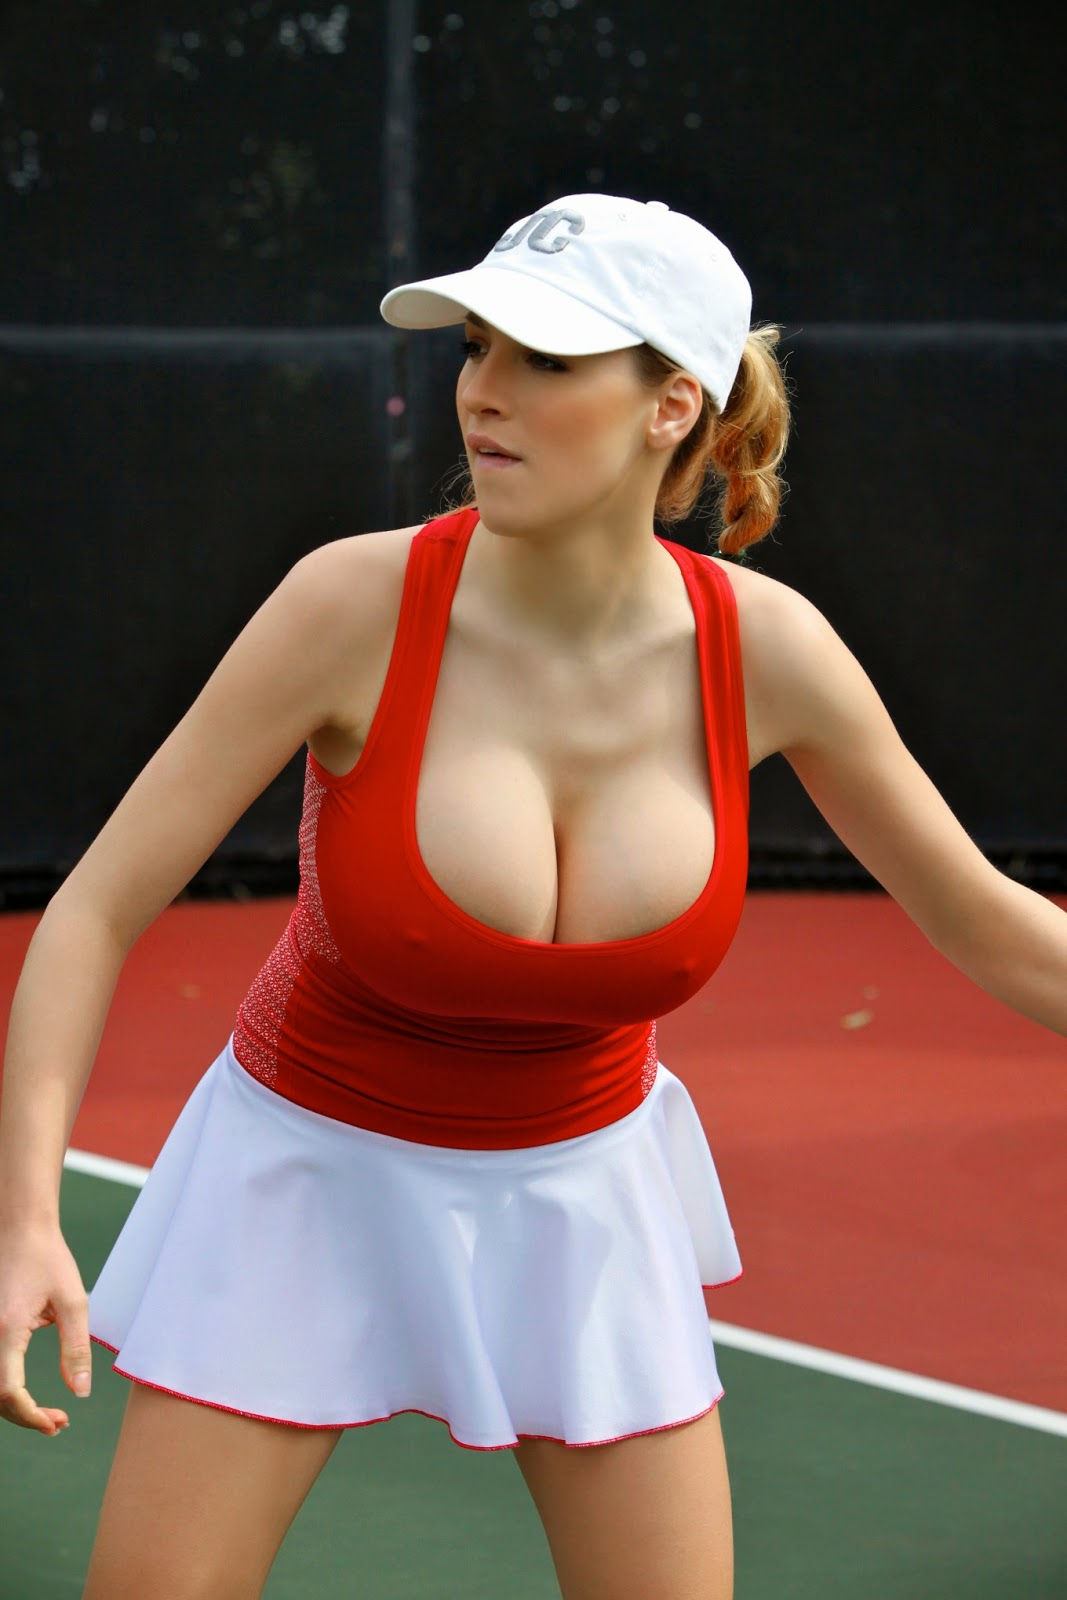 Jordan Carver Playing Hot Tennis Big Boobs Cleavage Show -1397